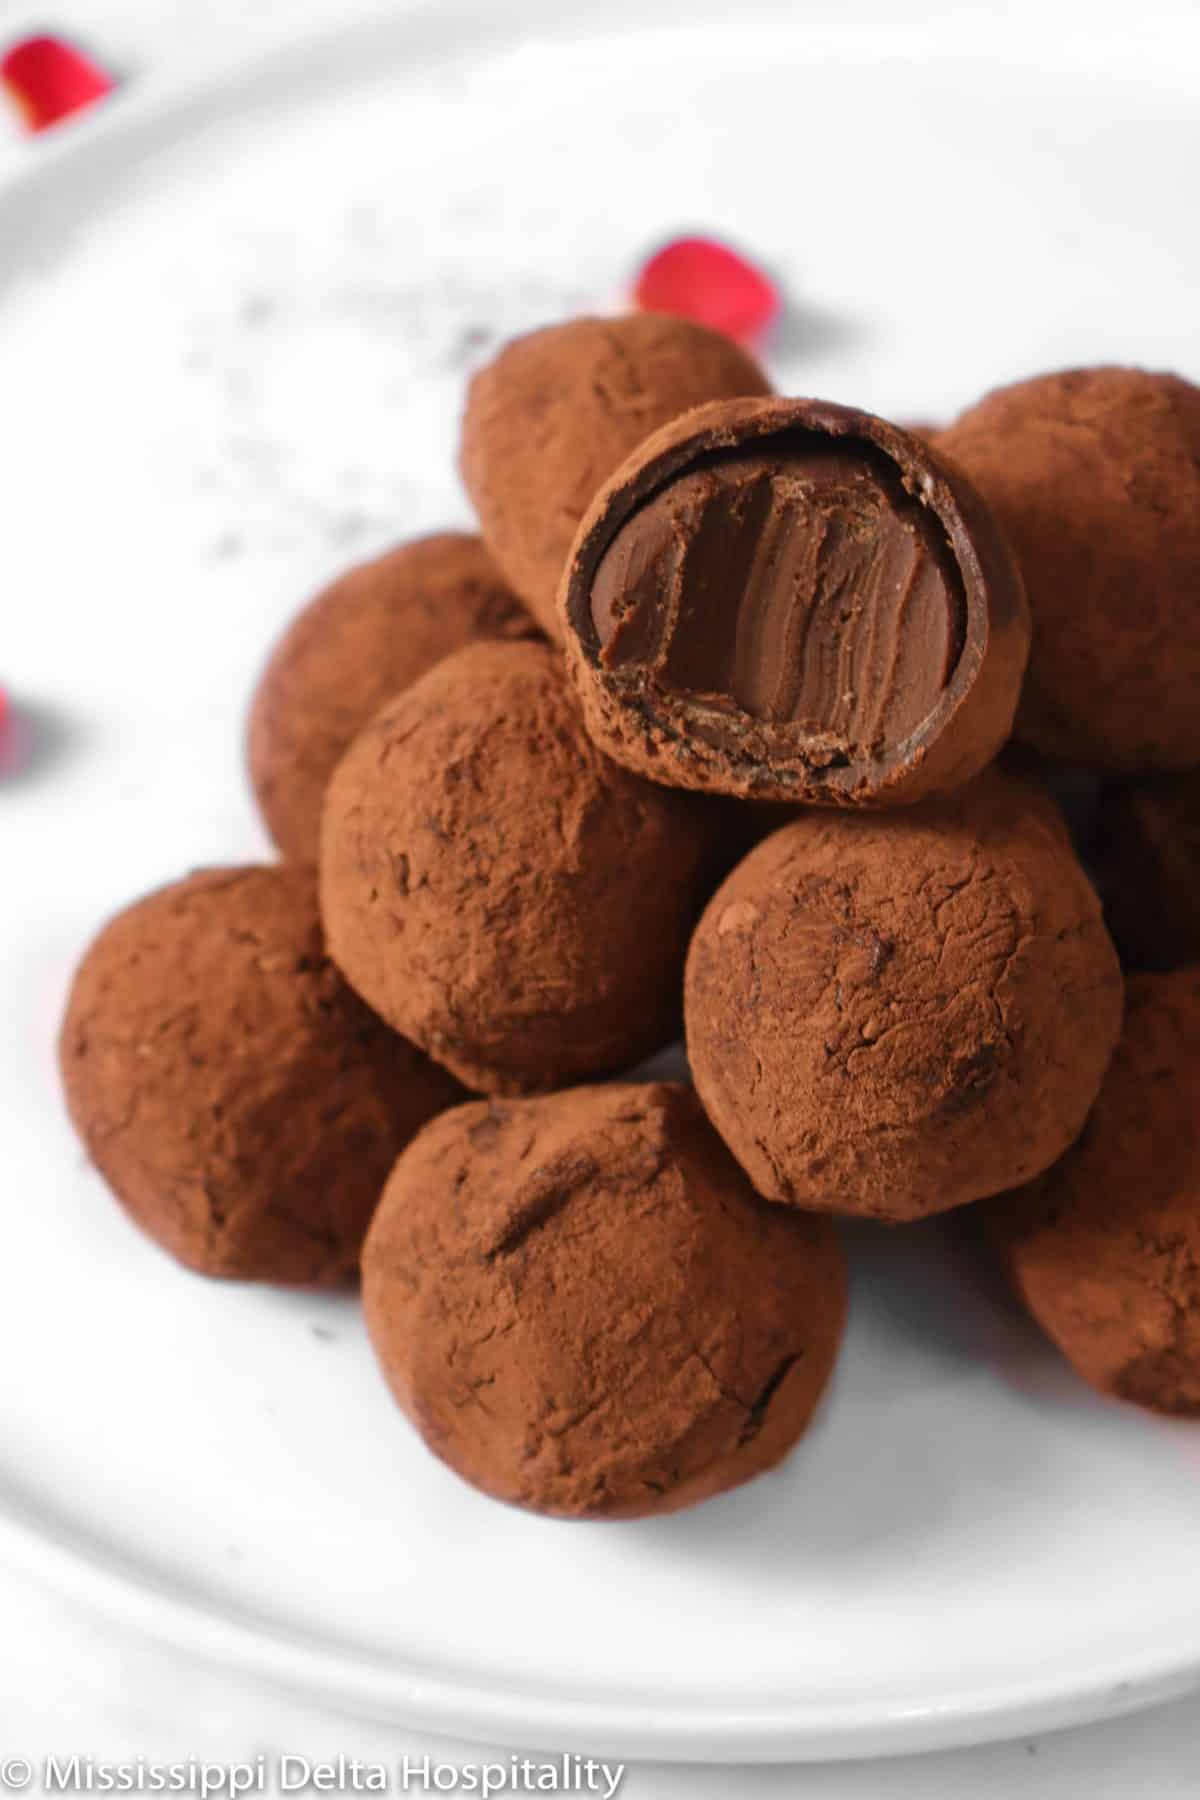 a stack of dark chocolate truffles covered in cocoa powder with a bite taken out of one on a white plate